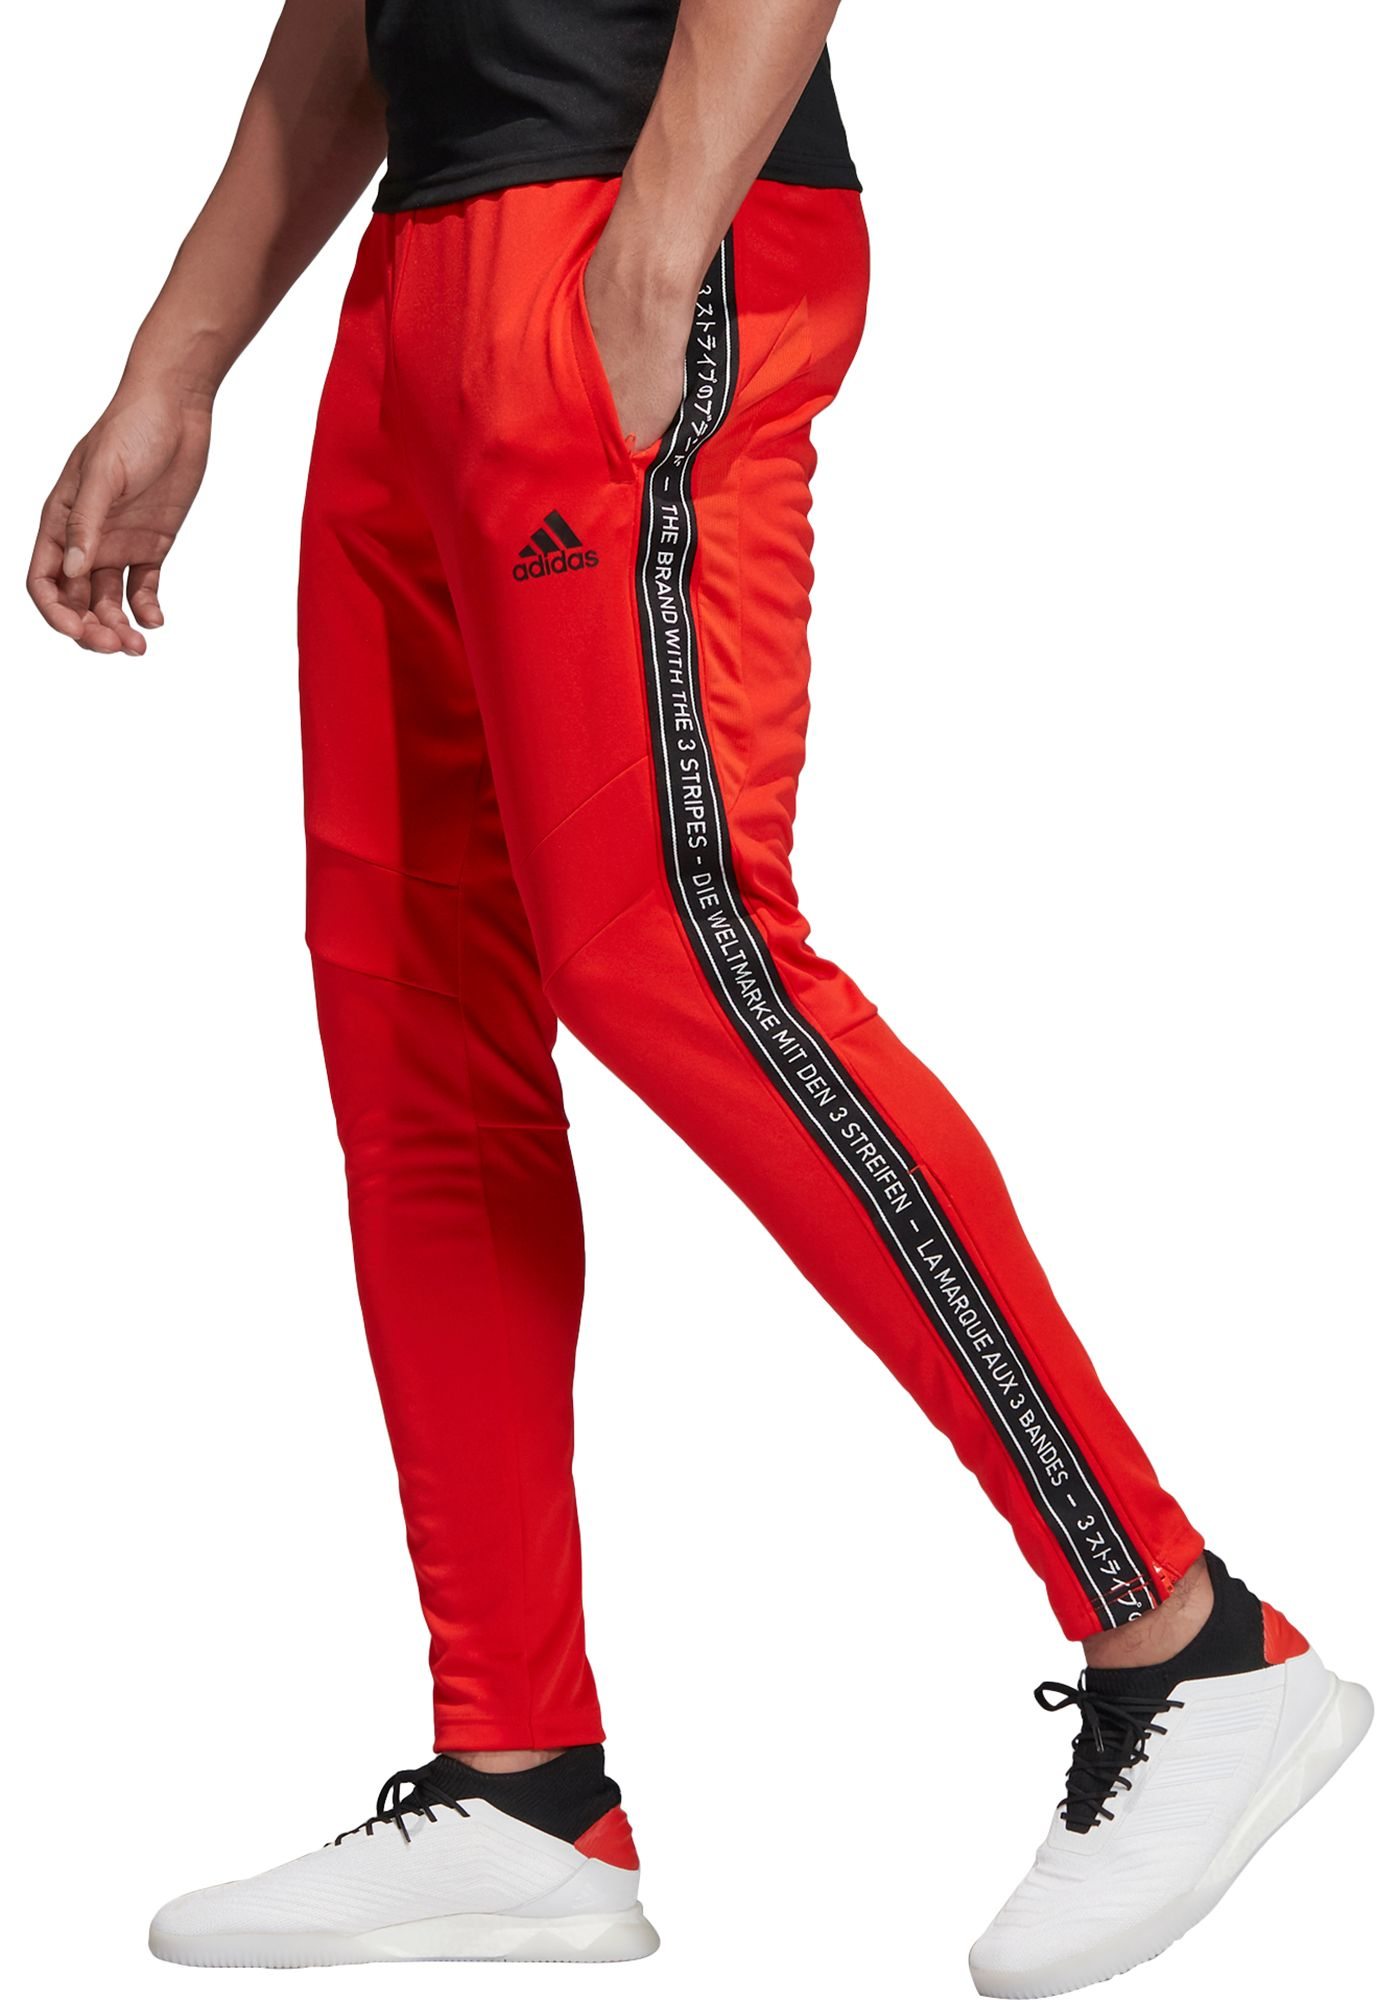 adidas Men's Tiro 19 Taped Training Pants